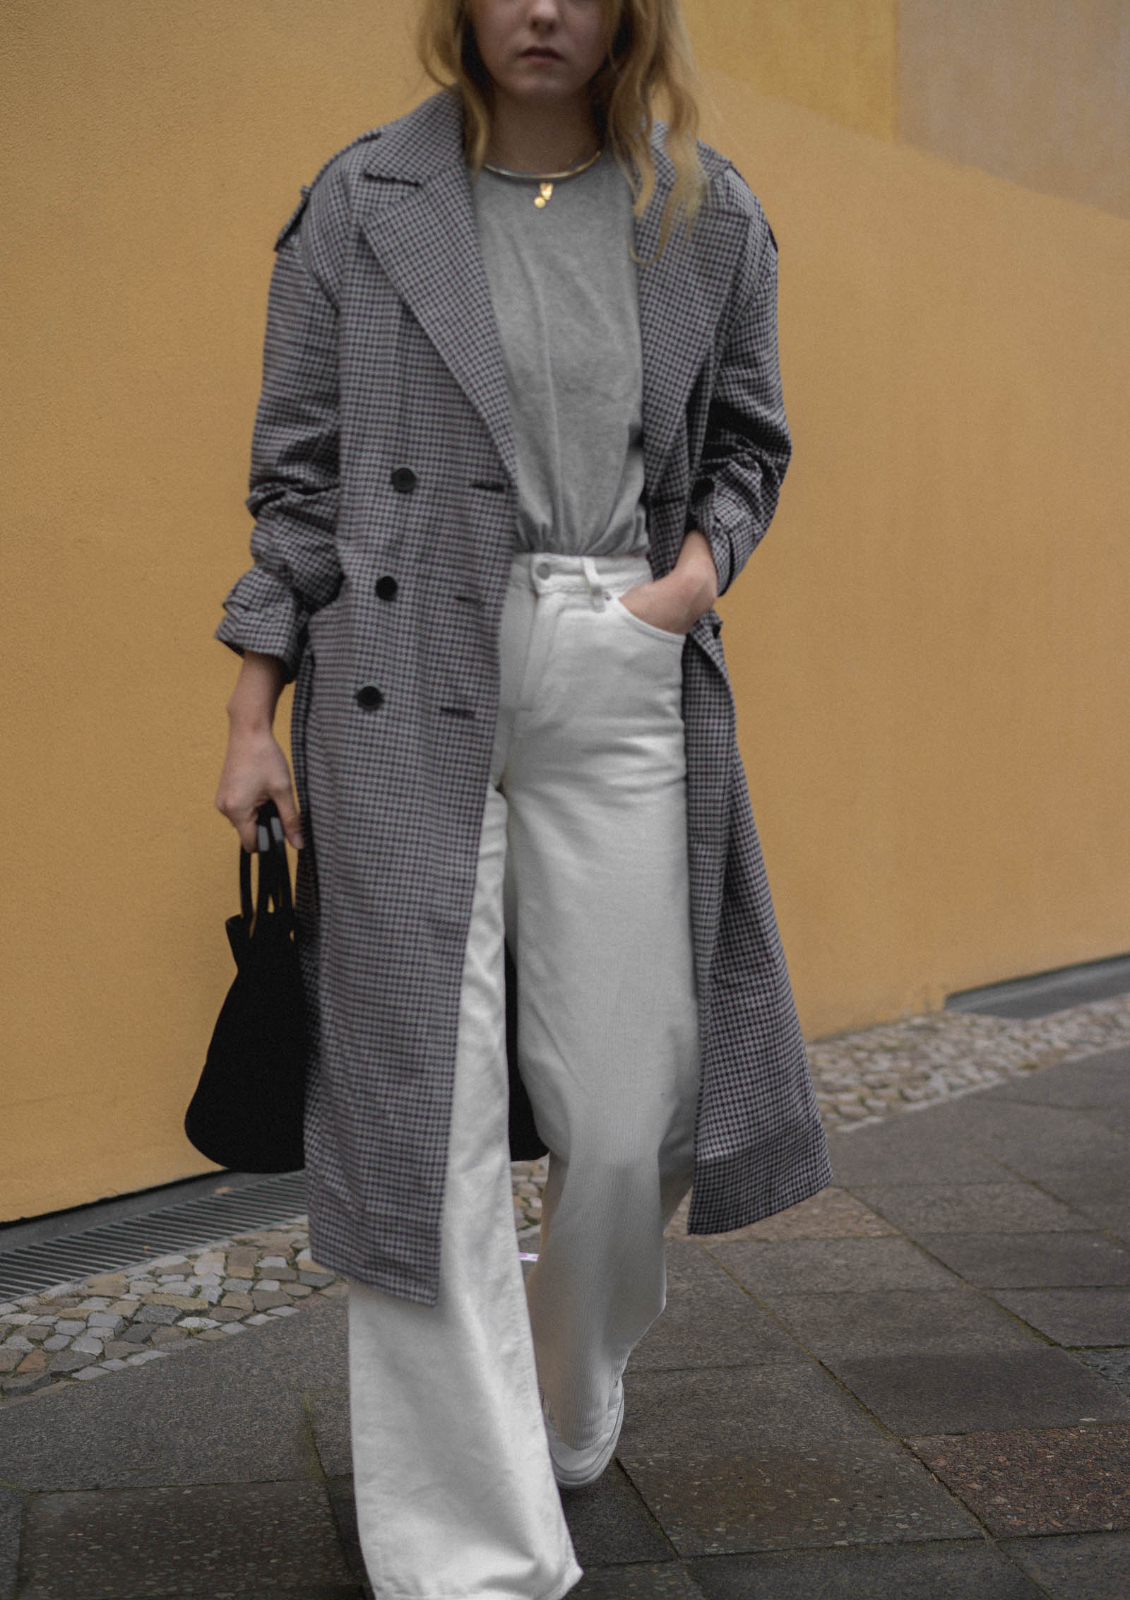 TheLimitsofcontrol_Fashionblog_Berlin_Deutschland_Trench-Coat-Checked-White-Cord-Pants-Reebok-Sneaker